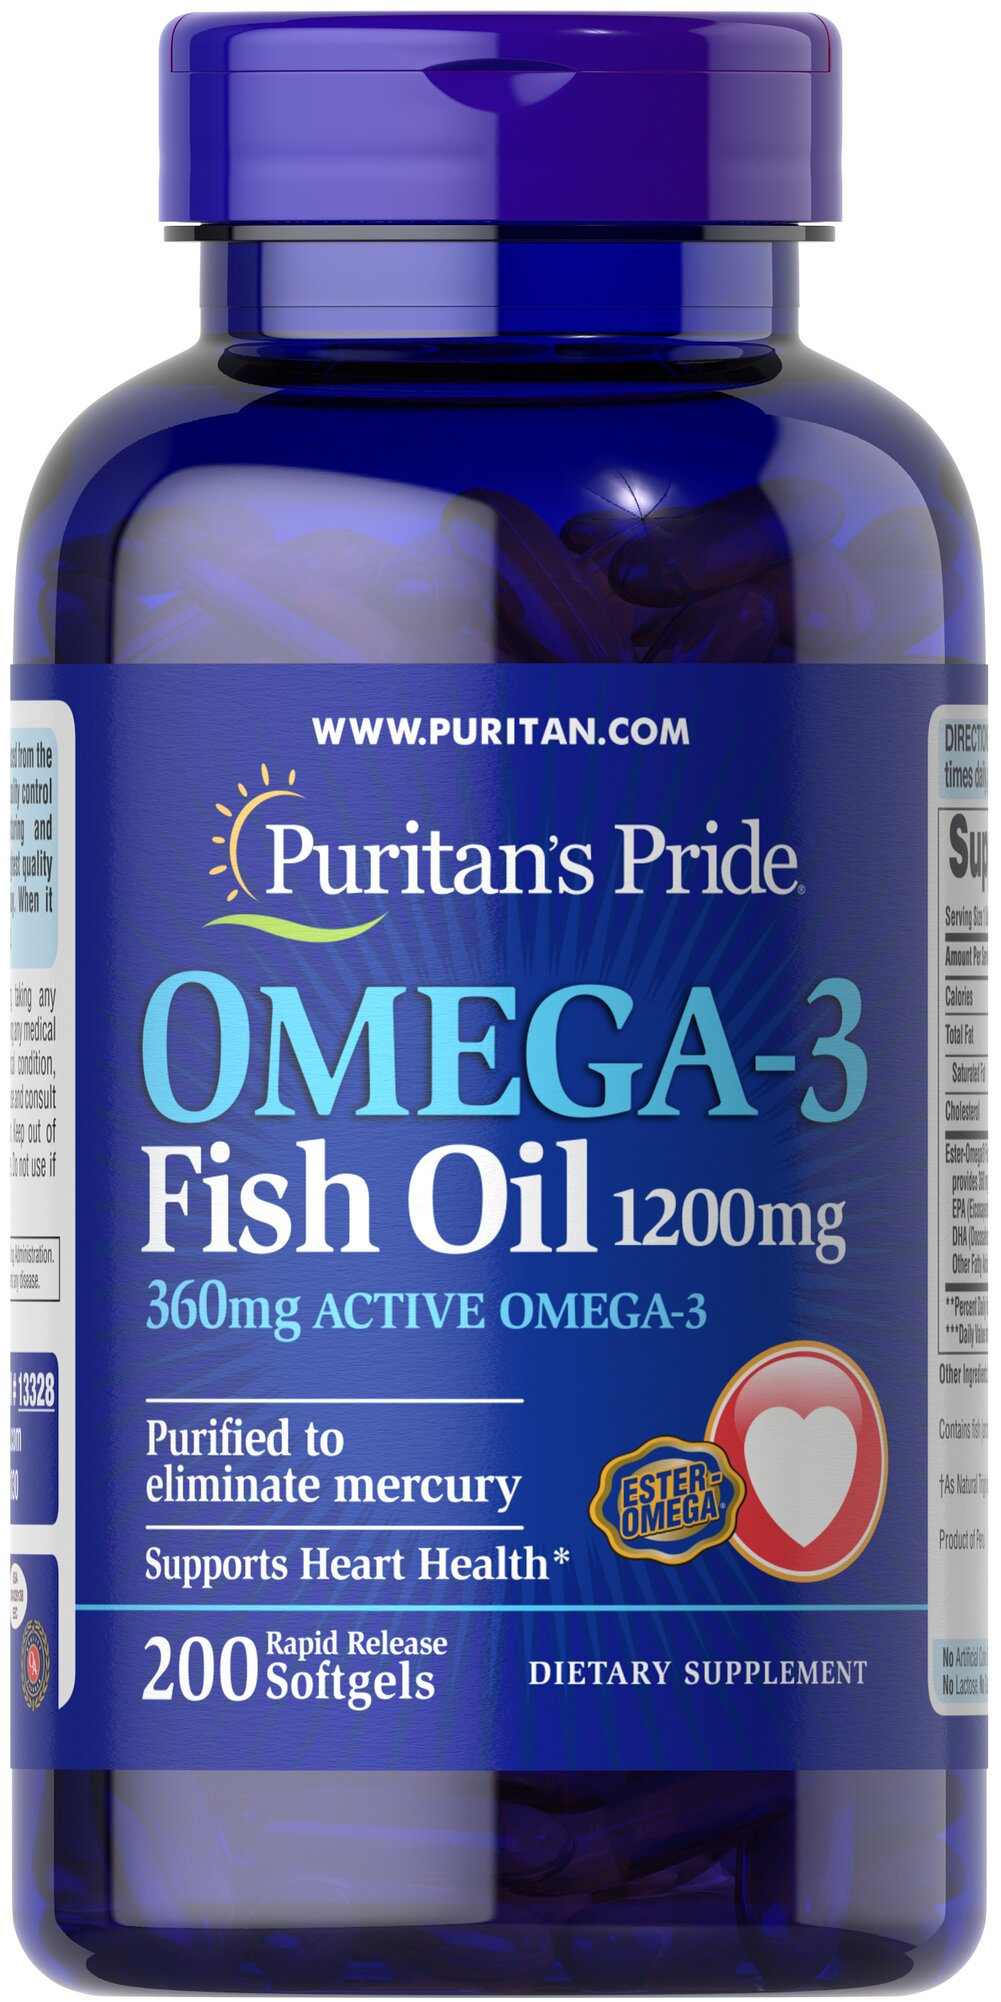 Omega-3 Fish Oil 1200 mg (360 mg Active Omega-3) <p>This Ester-Omega® Fish Oil provides 360mg of total omega-3 fatty acids, comprising of EPA, DHA and other fatty acids. EPA and DHA fatty acids support heart health.** Purified to eliminate mercury. Rapid release softgels.</p> 200 Softgels 1200 mg $21.99